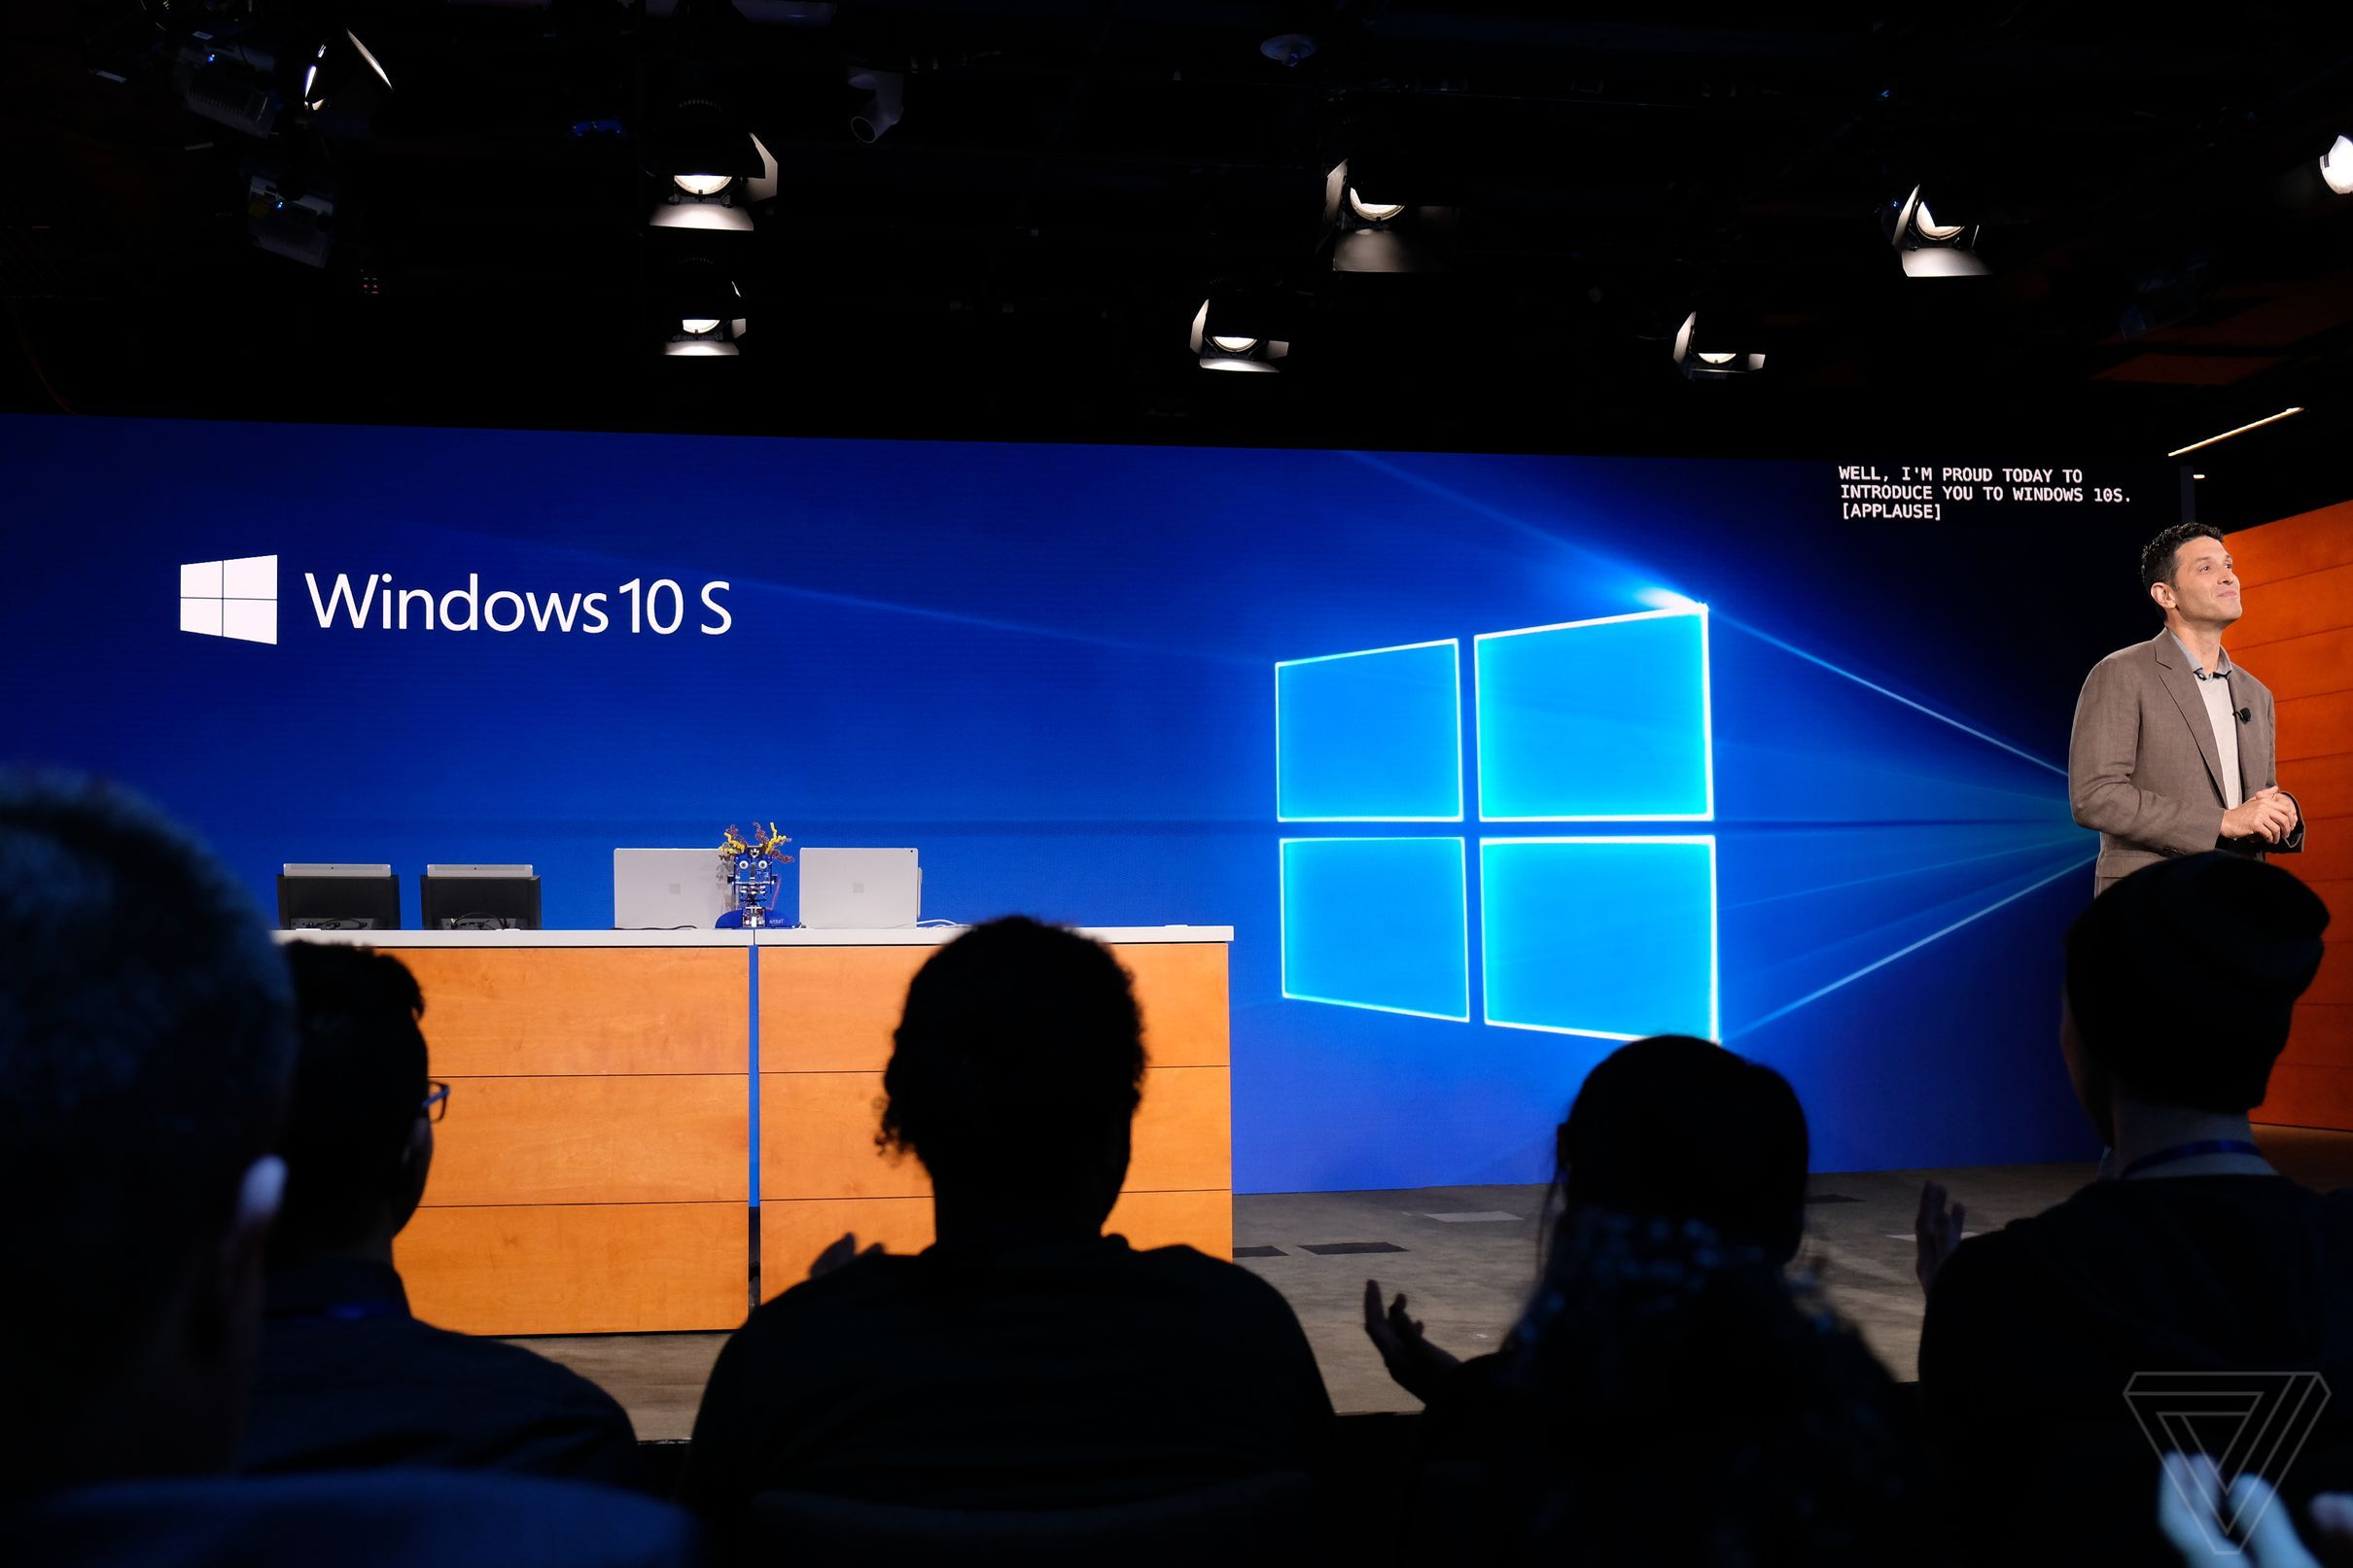 Windows 10 S everything you need to know about Microsoft